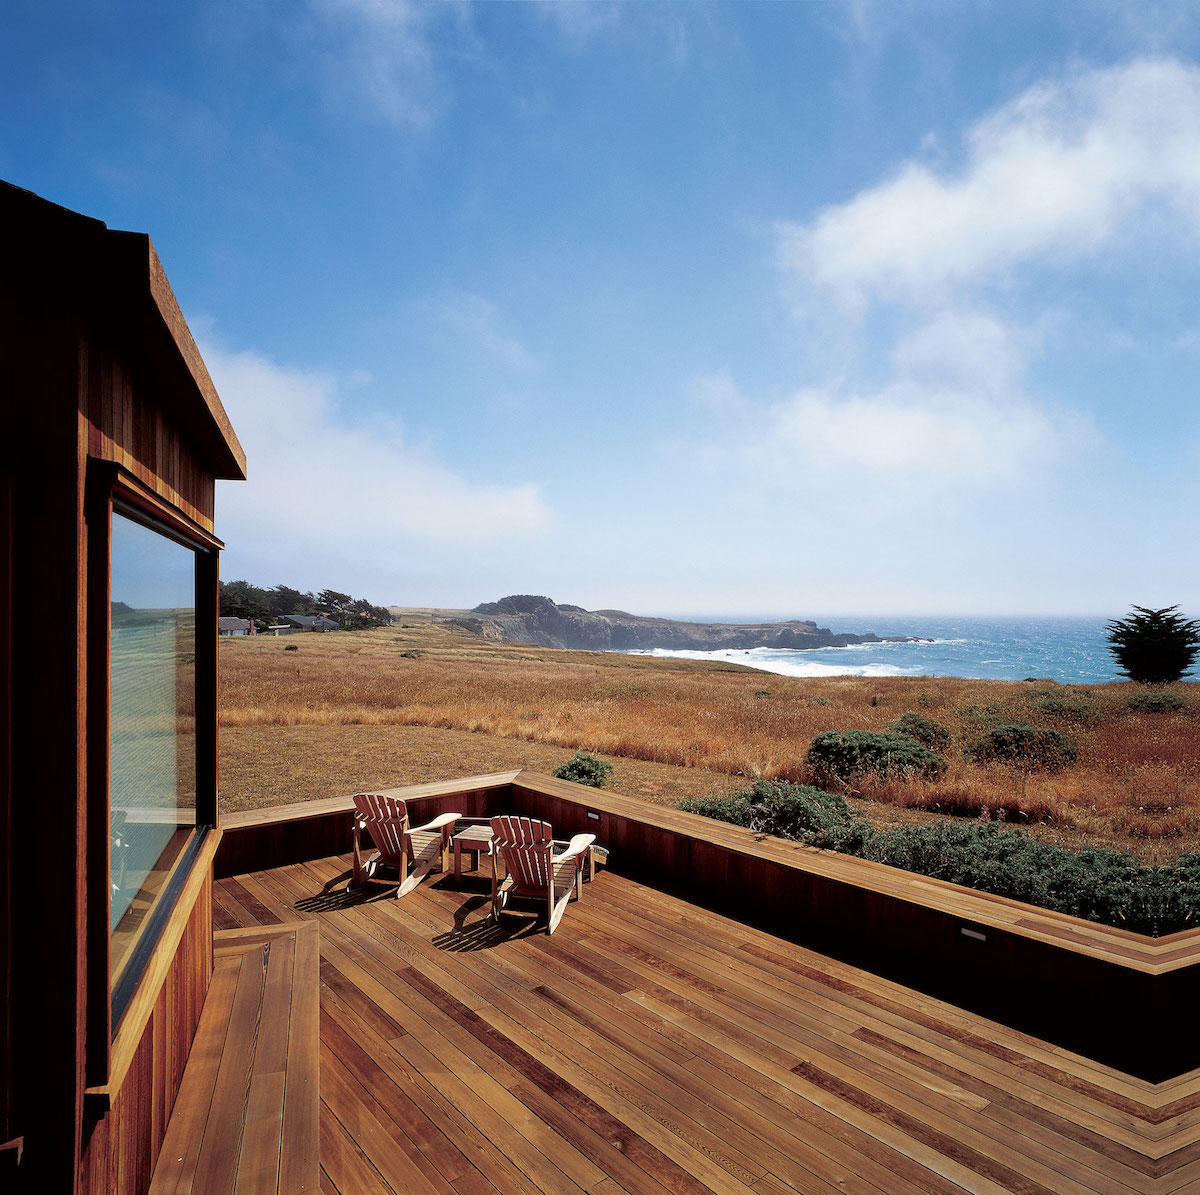 #josephesherick #searanch #bjorndesign_ca